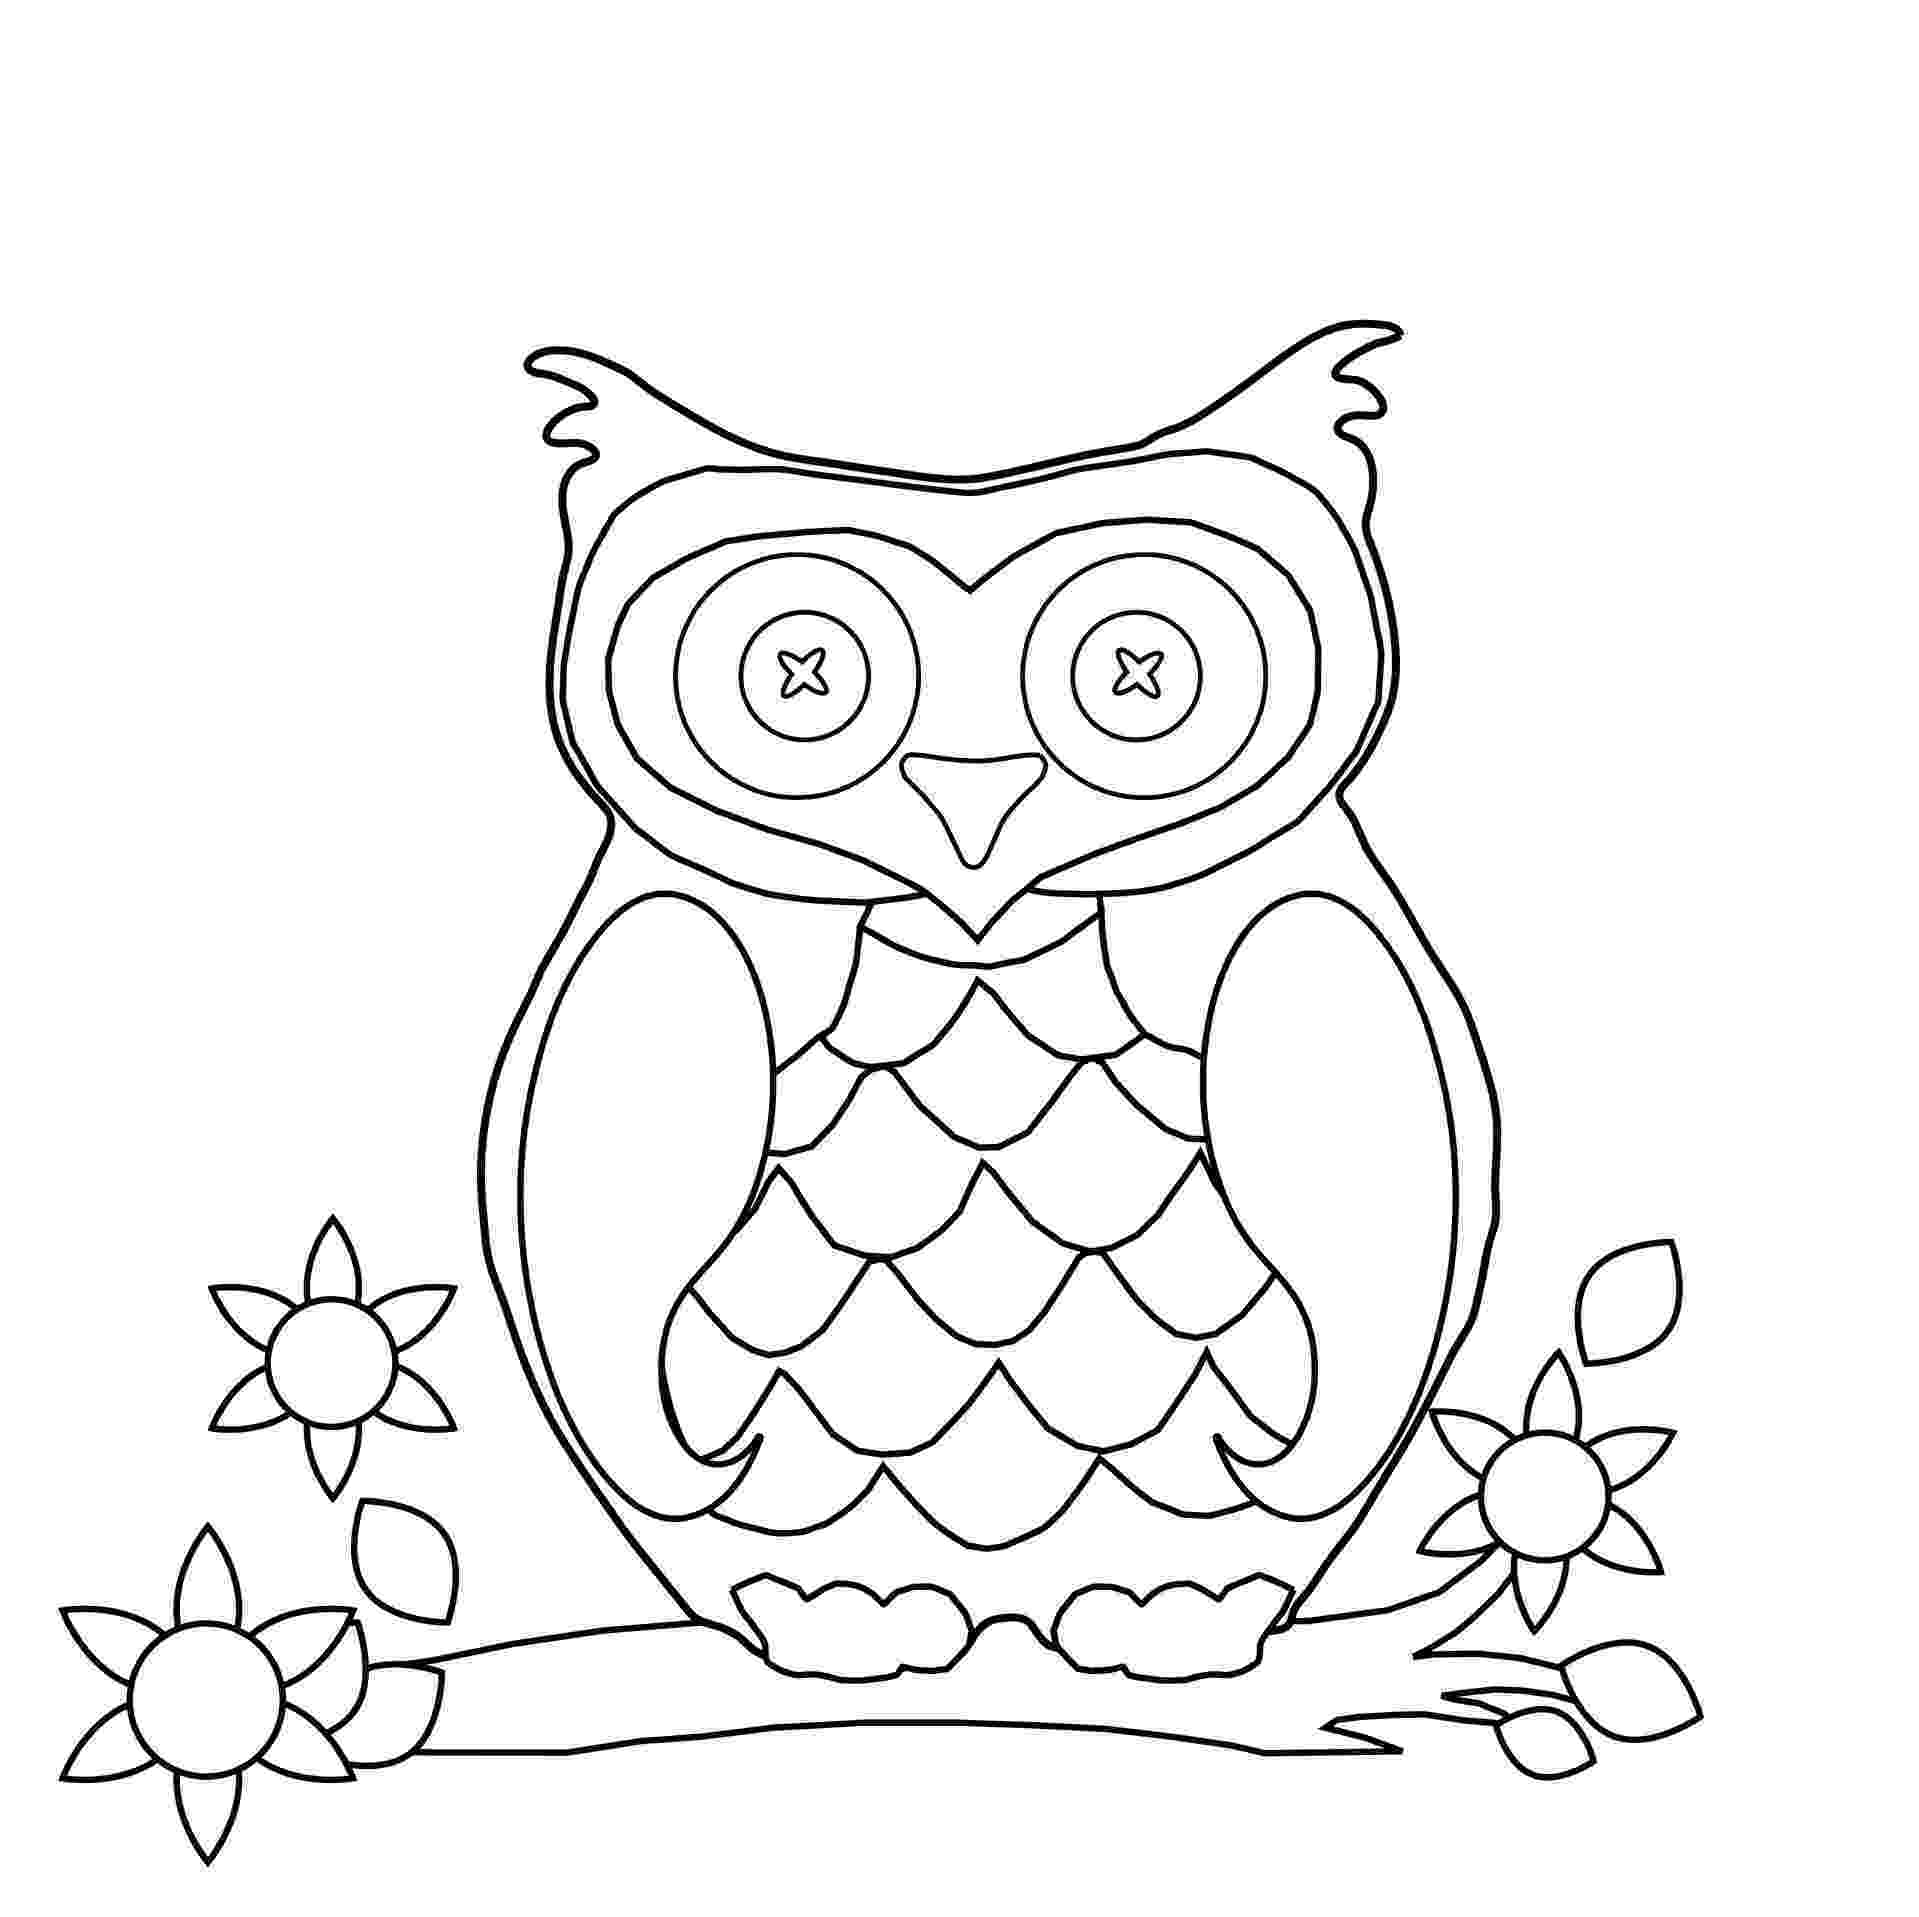 colored pictures of owls cartoon owl coloring page free printable coloring pages of pictures colored owls